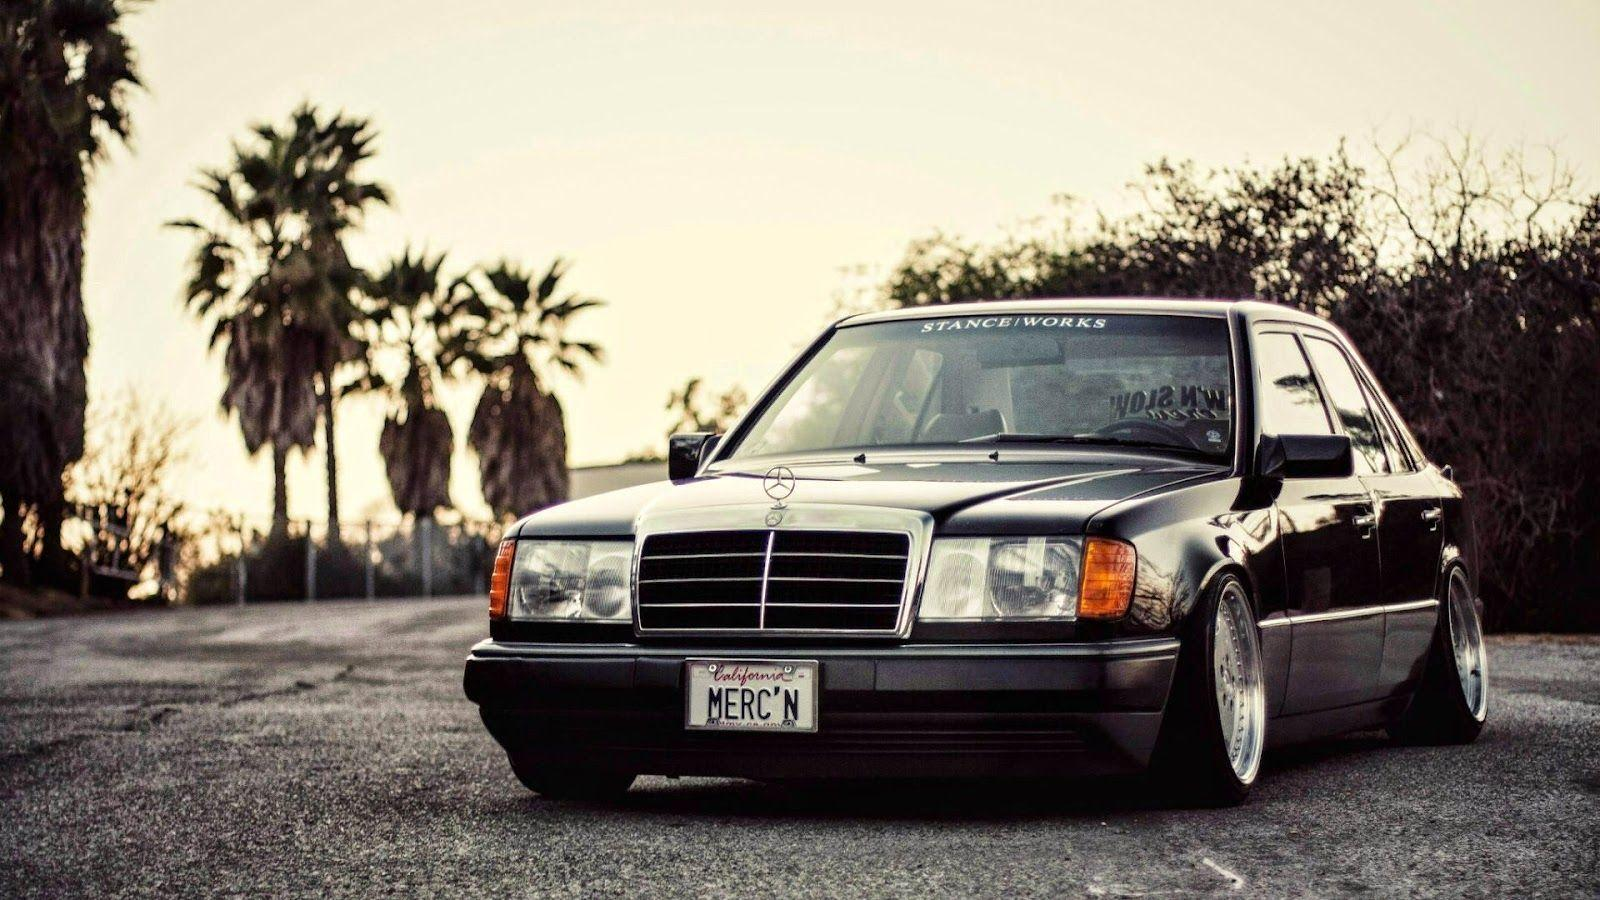 w124 stance | MB W124 | Pinterest | Wallpaper